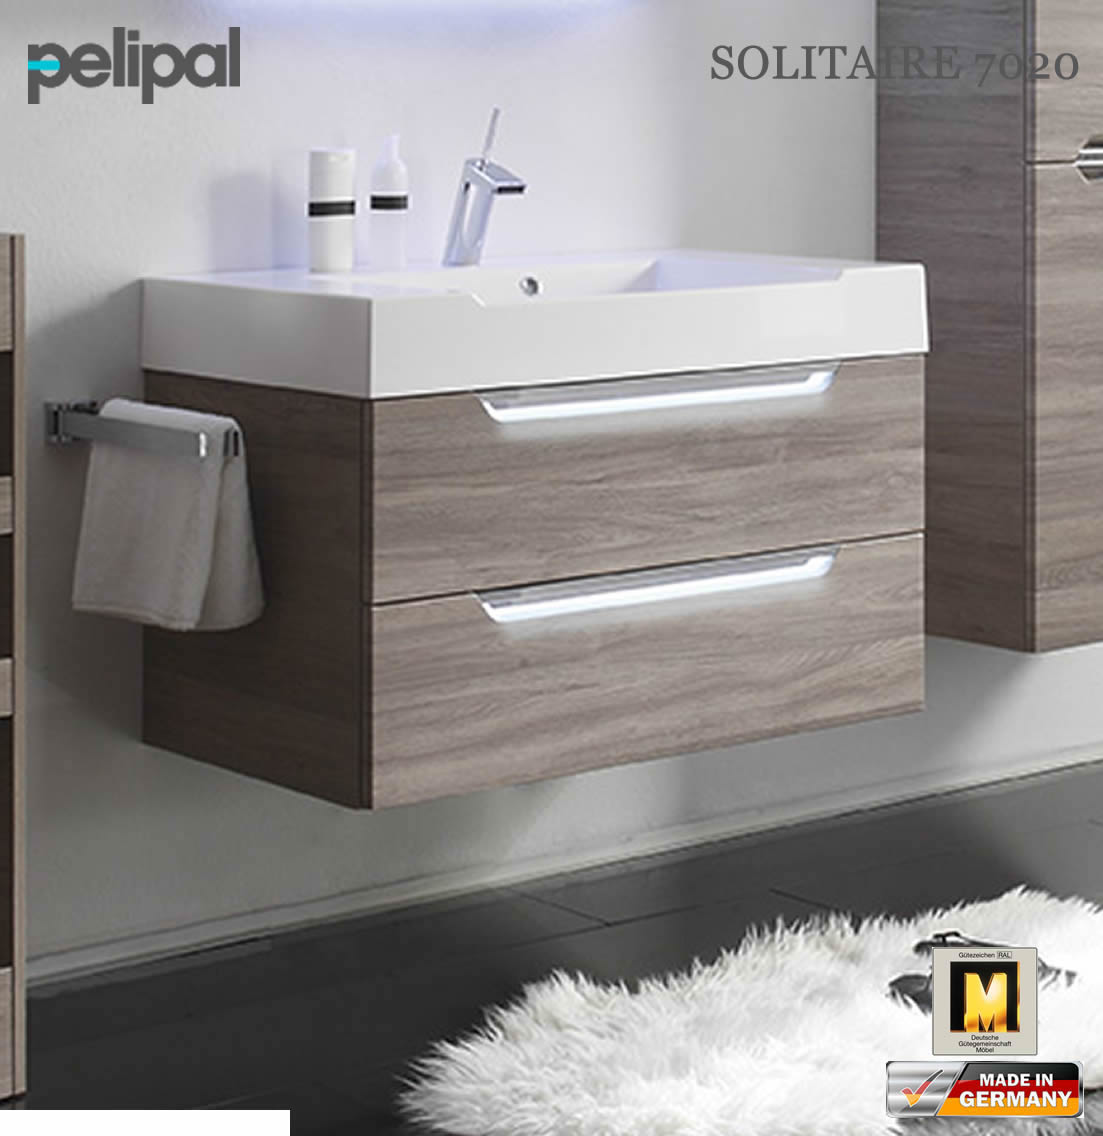 pelipal solitaire 7020 waschtischunterschrank set 86 cm 7020 wtusl 01 impuls home. Black Bedroom Furniture Sets. Home Design Ideas